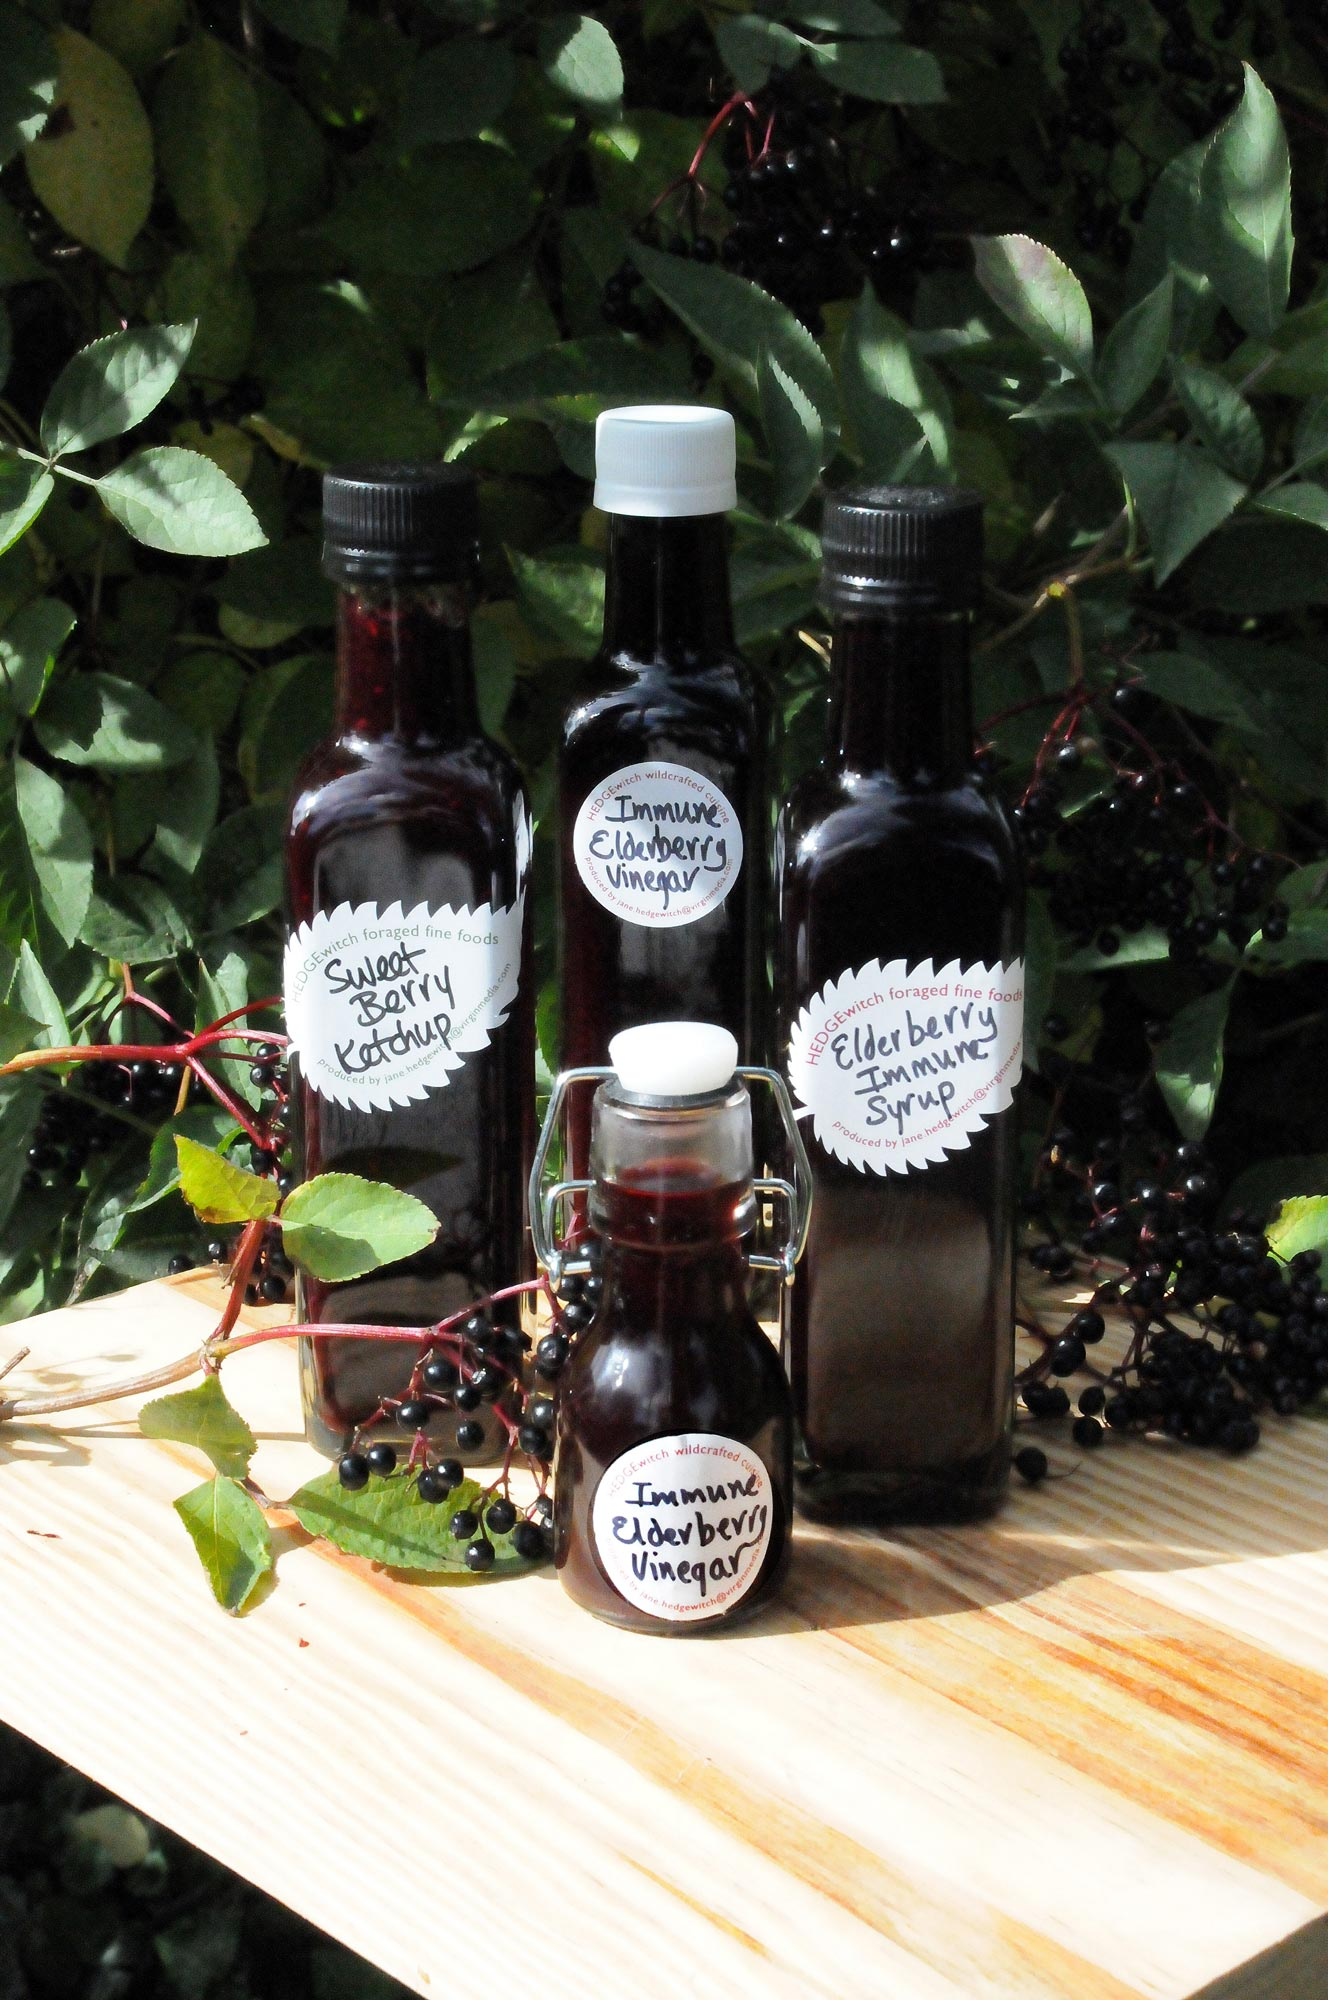 Elderberry products